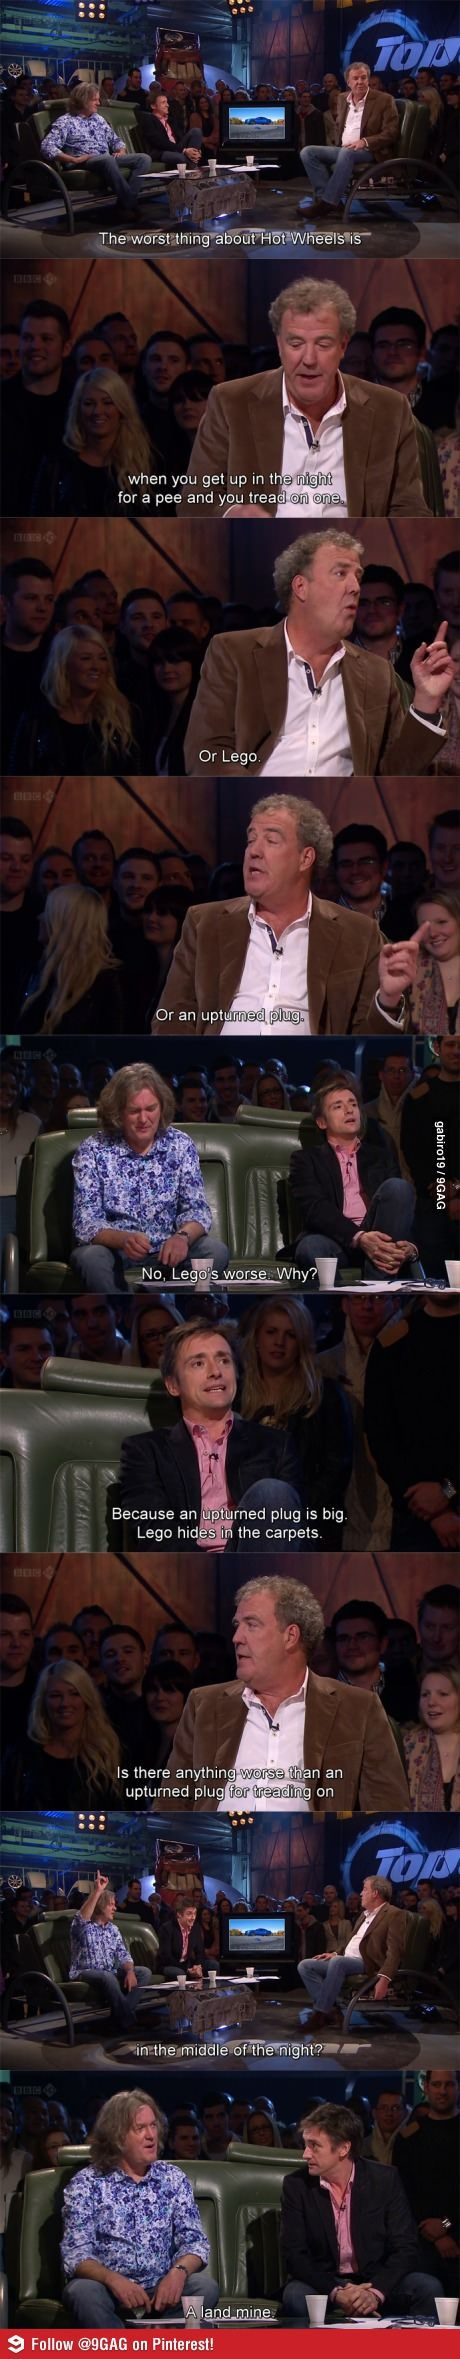 Thank you James May, for putting things in better perspective.